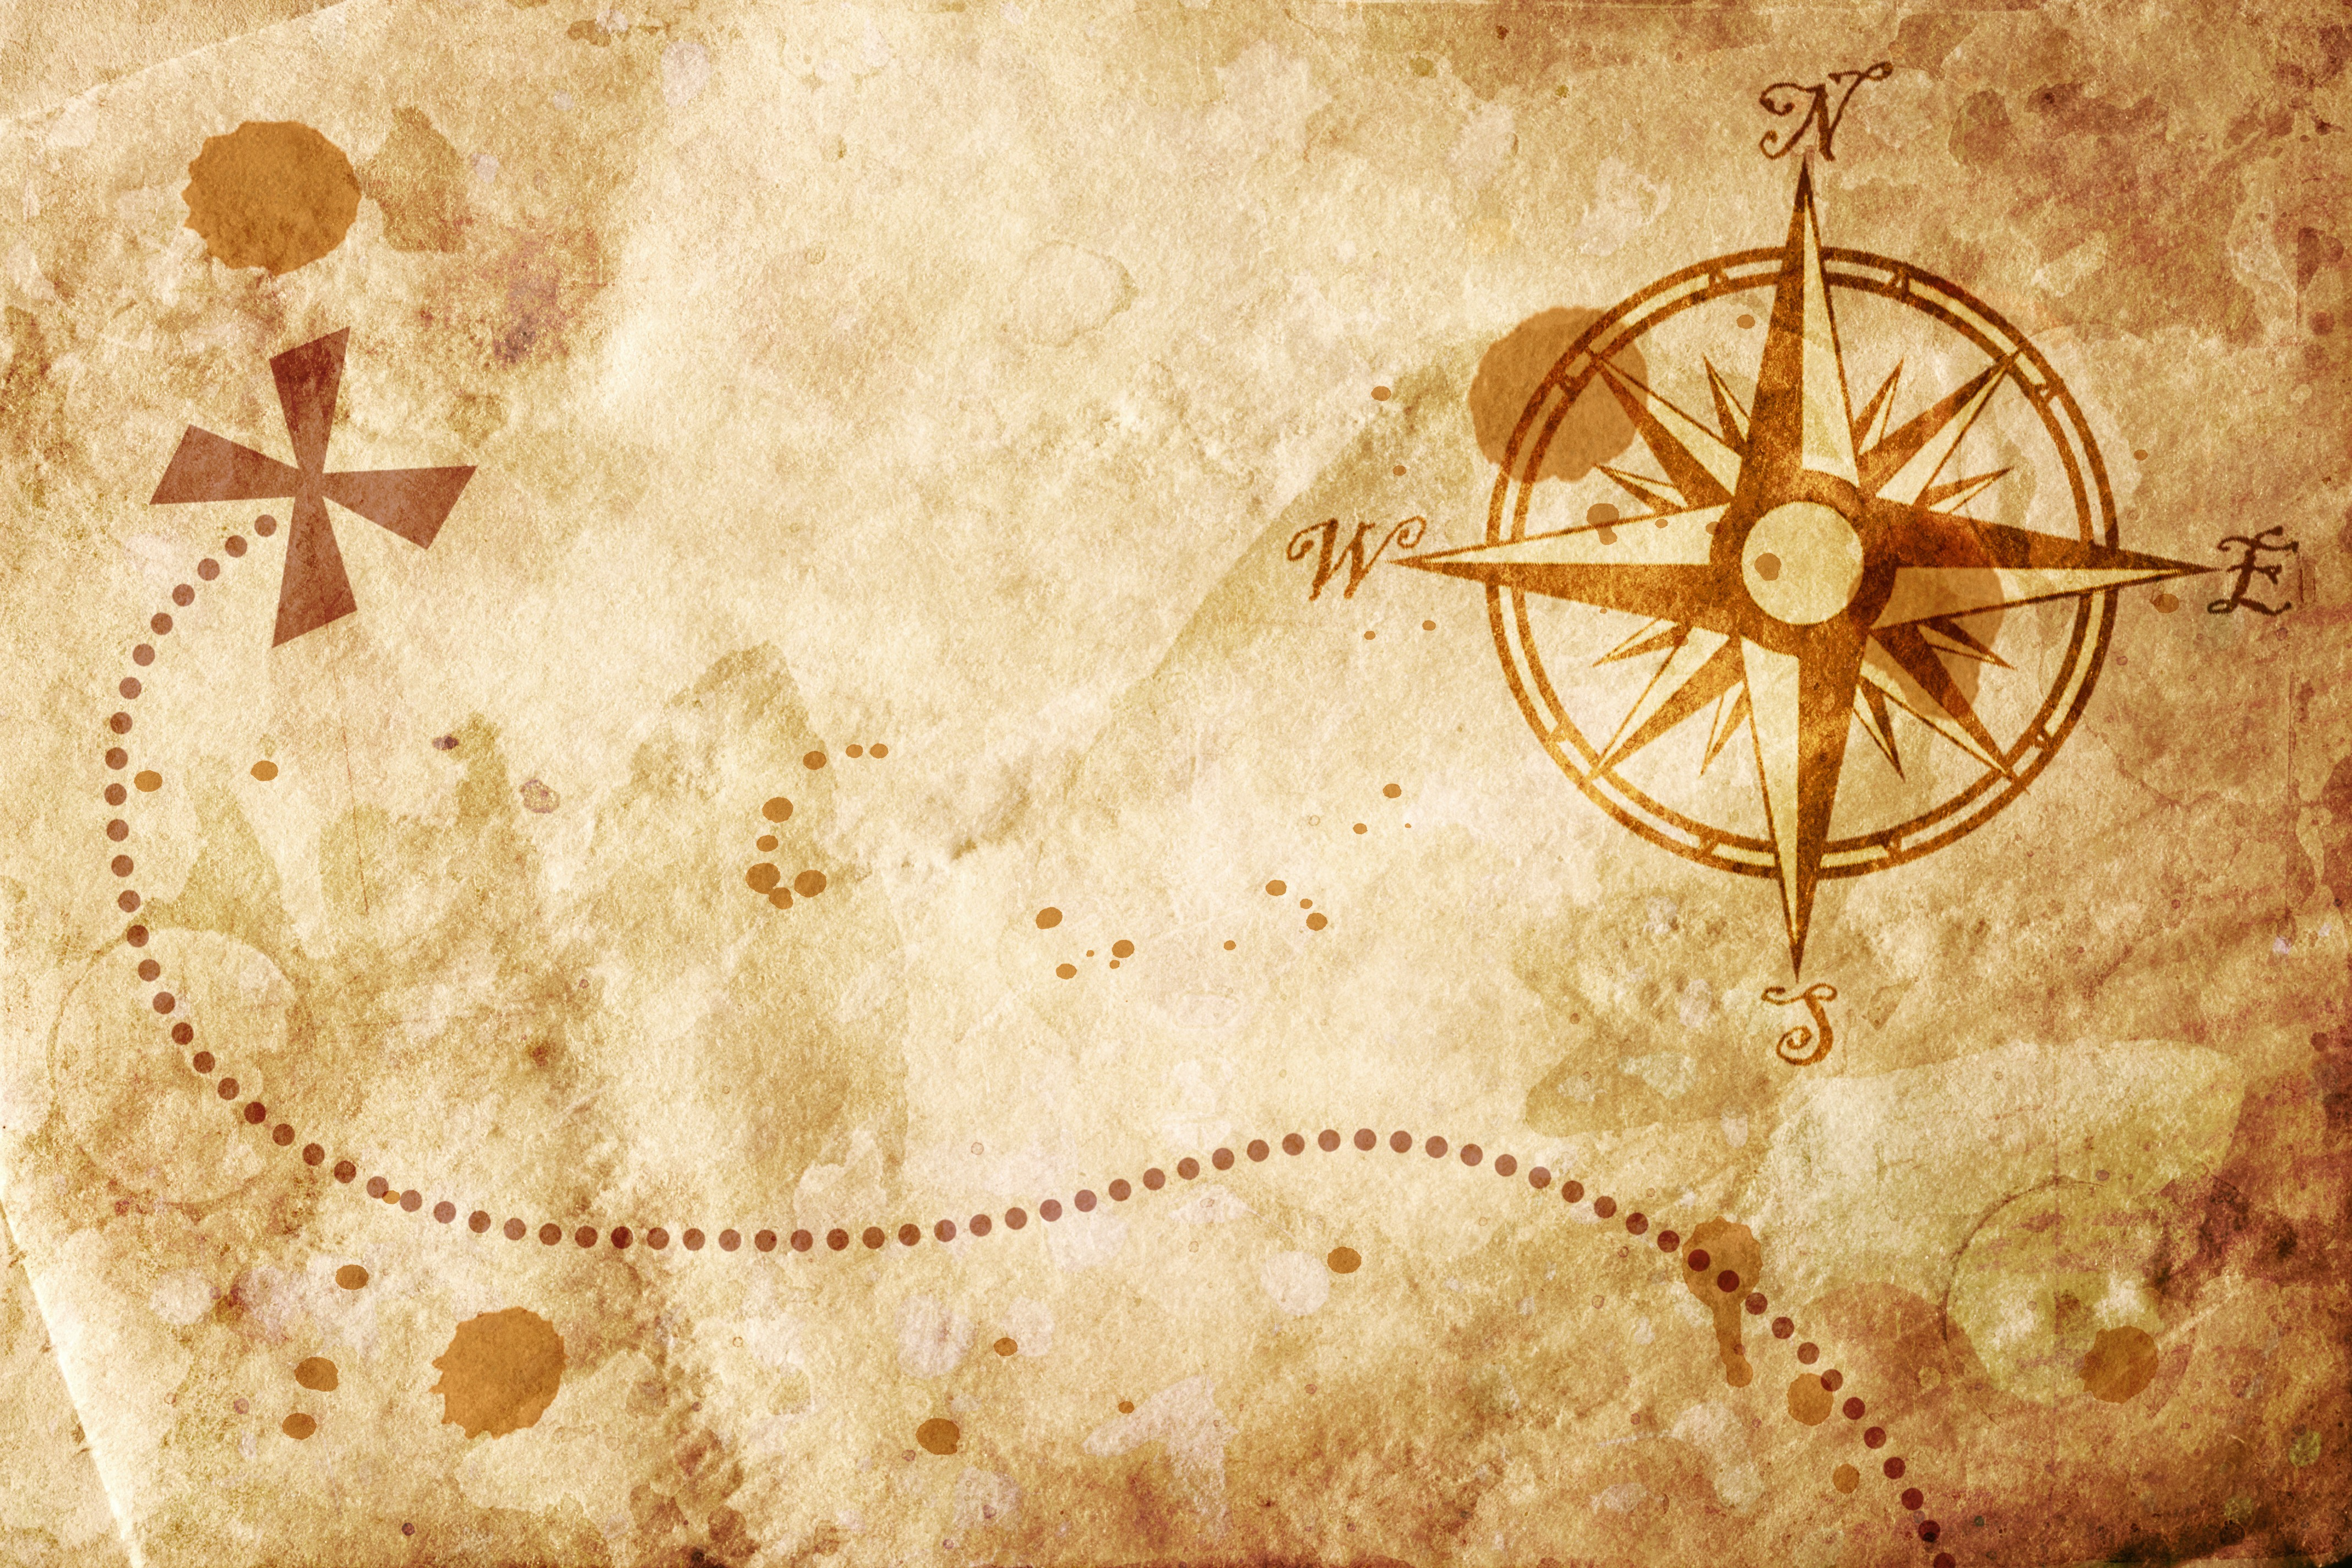 24 Compass Quality HD Pictures GsFDcY Graphics 4272x2848